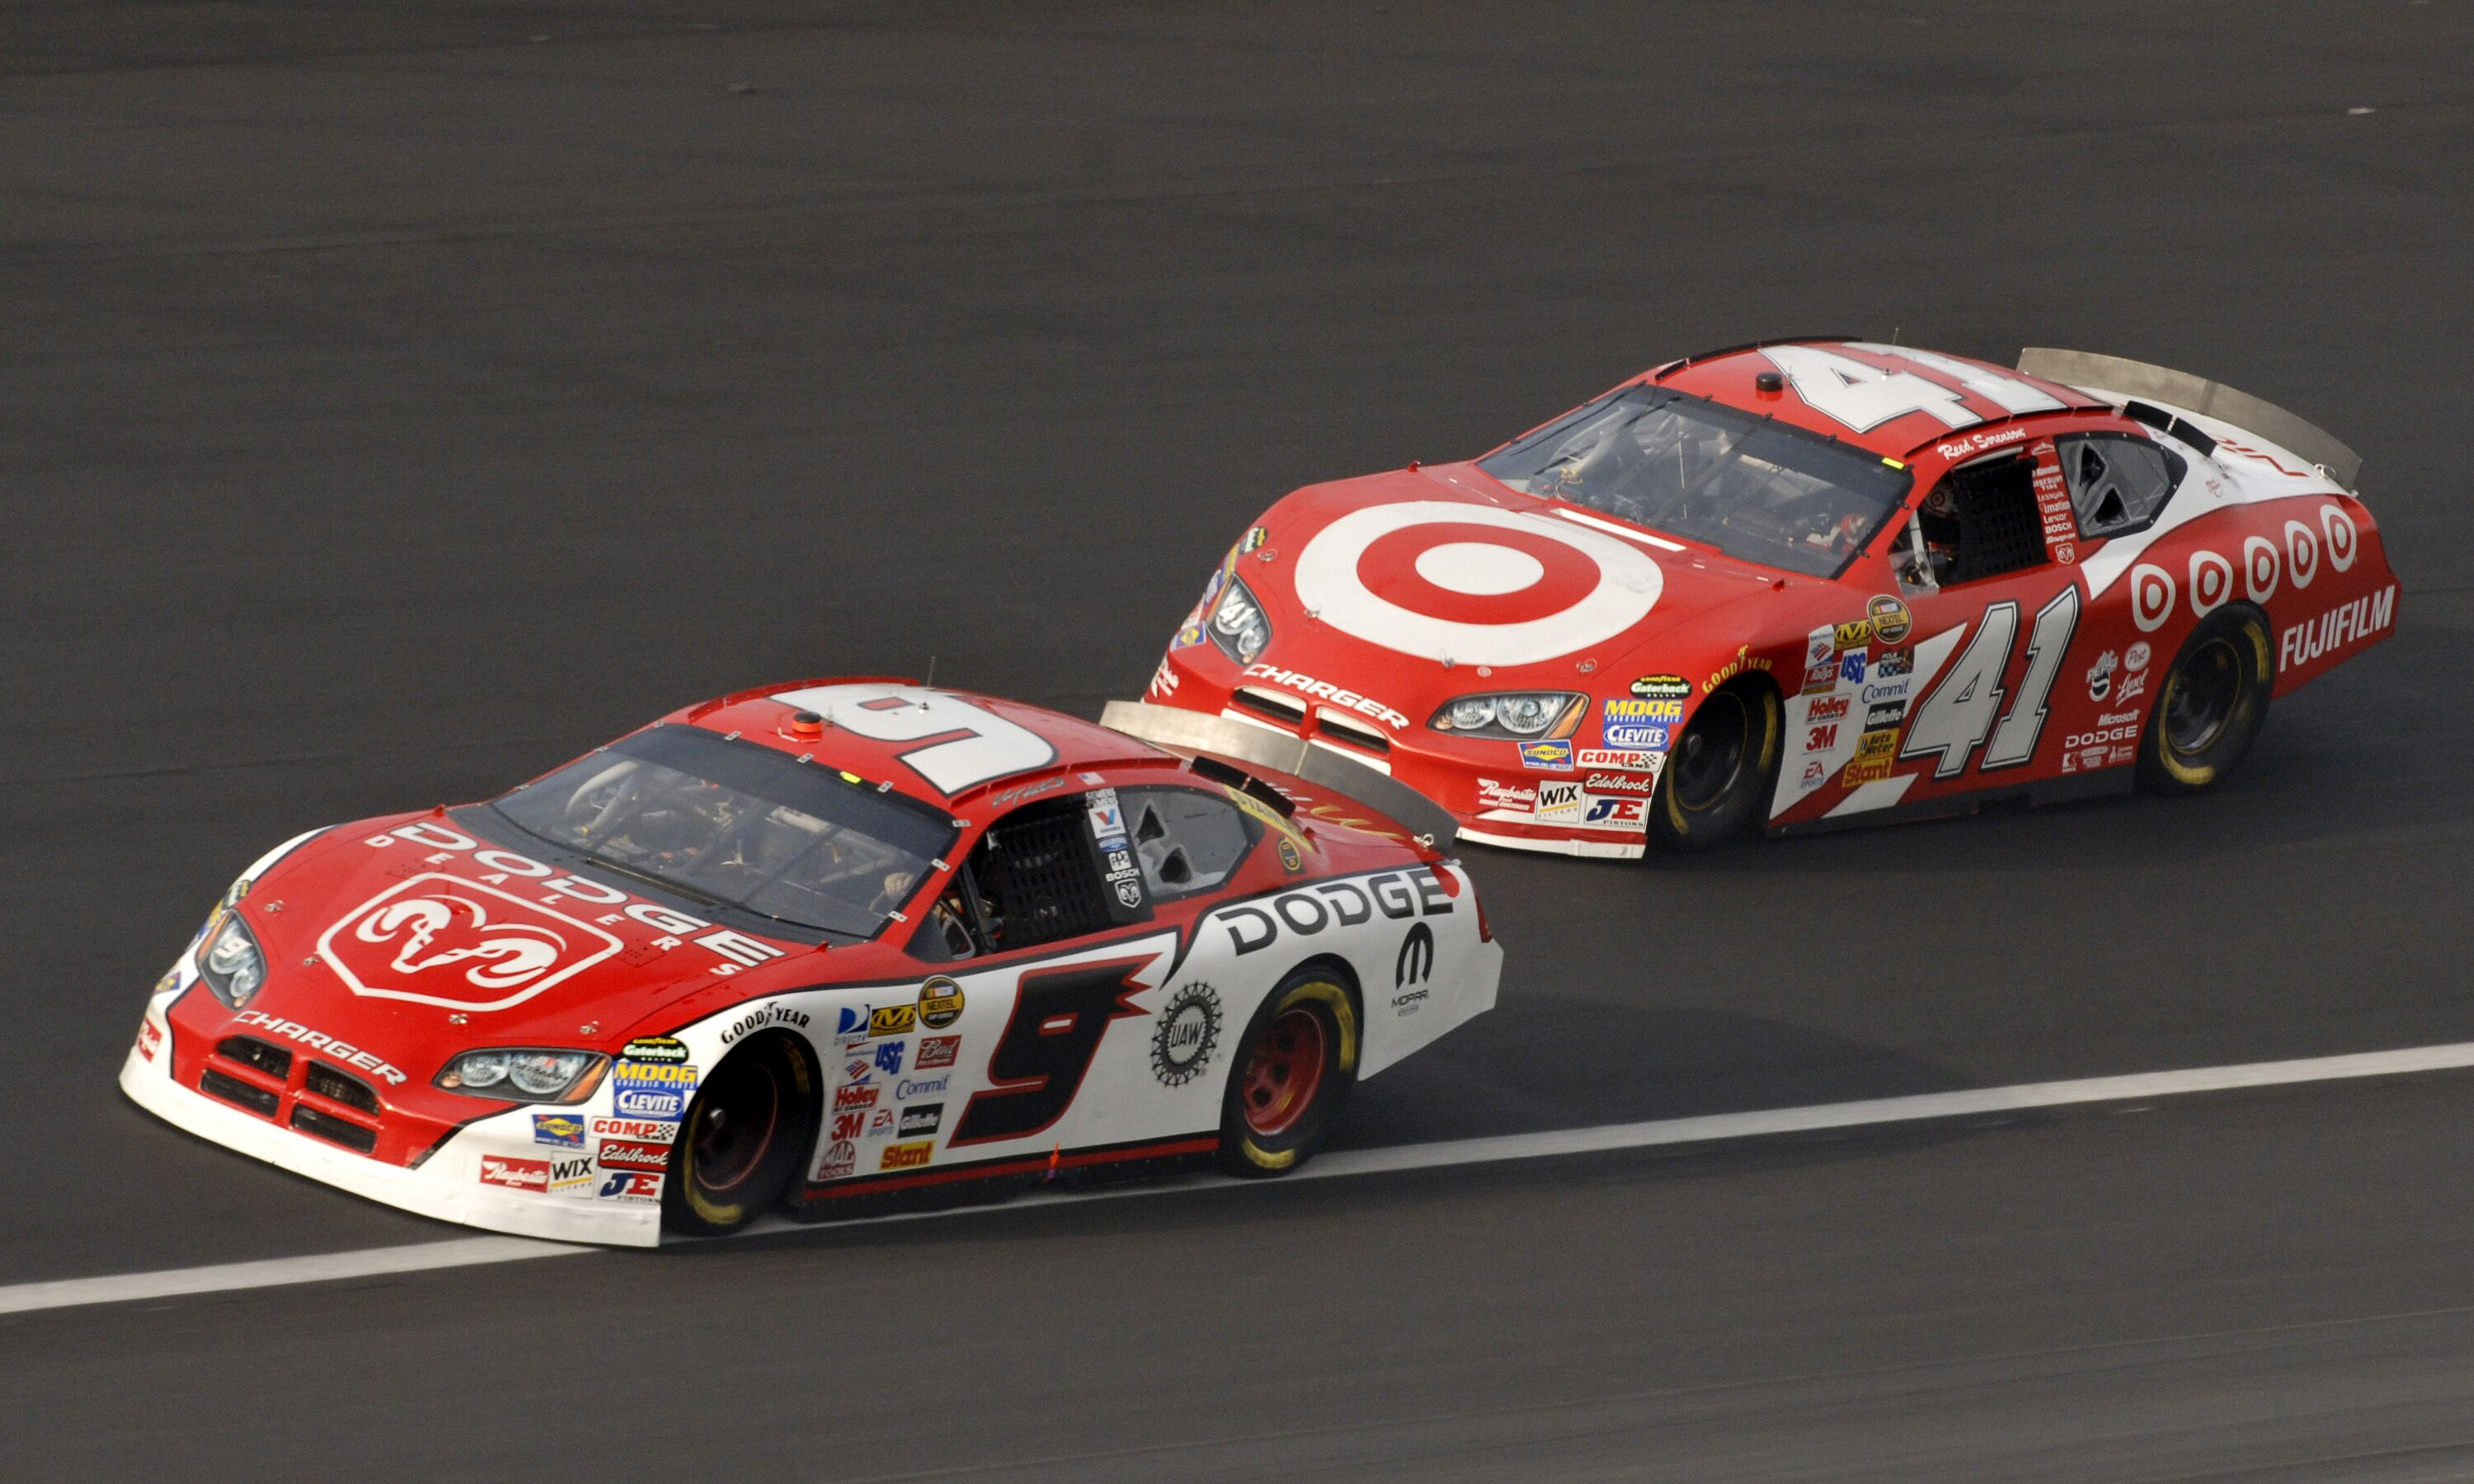 Nascar Manufacturers Dodge And Nissan Will Have To Wait Until 2020